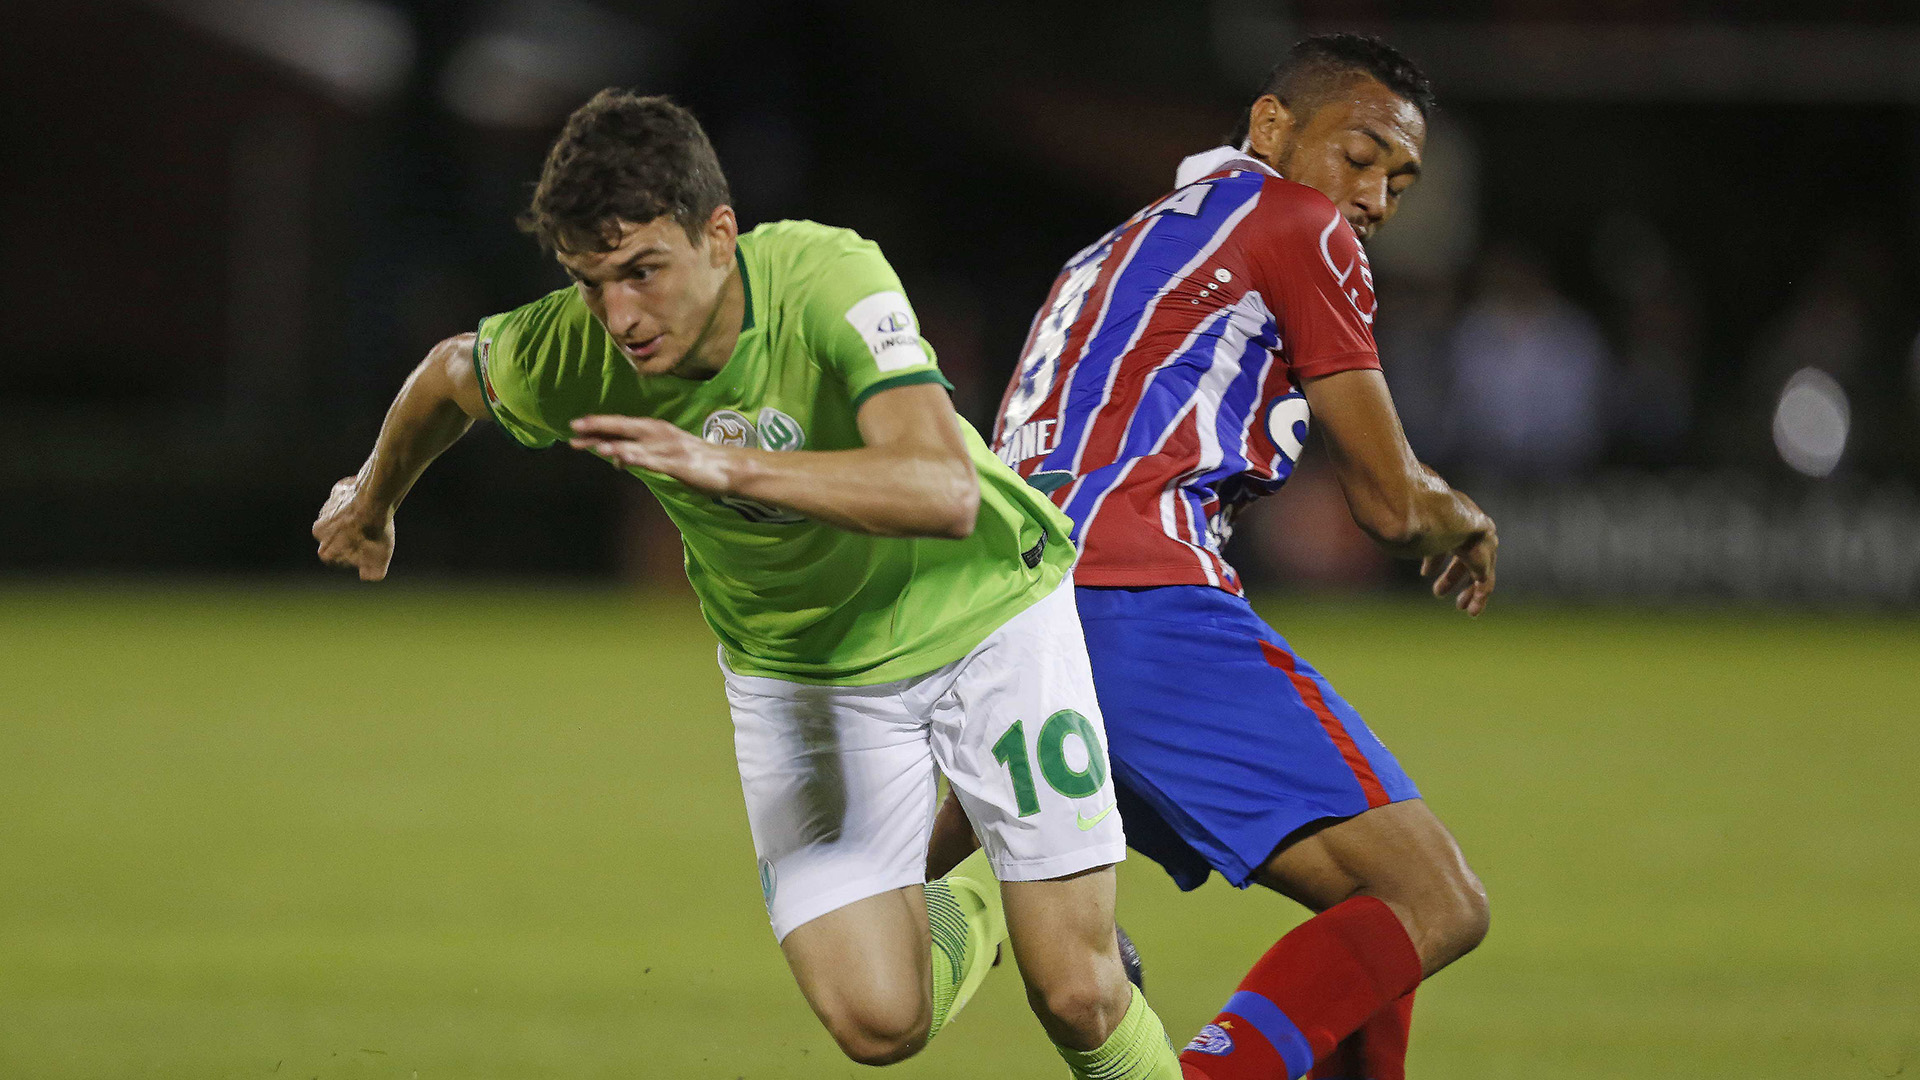 Photo of Florida Cup: Wolfsburg vs. Bahia Match a 0-0 Draw. Wolfsburg Wins on Penalty Kicks